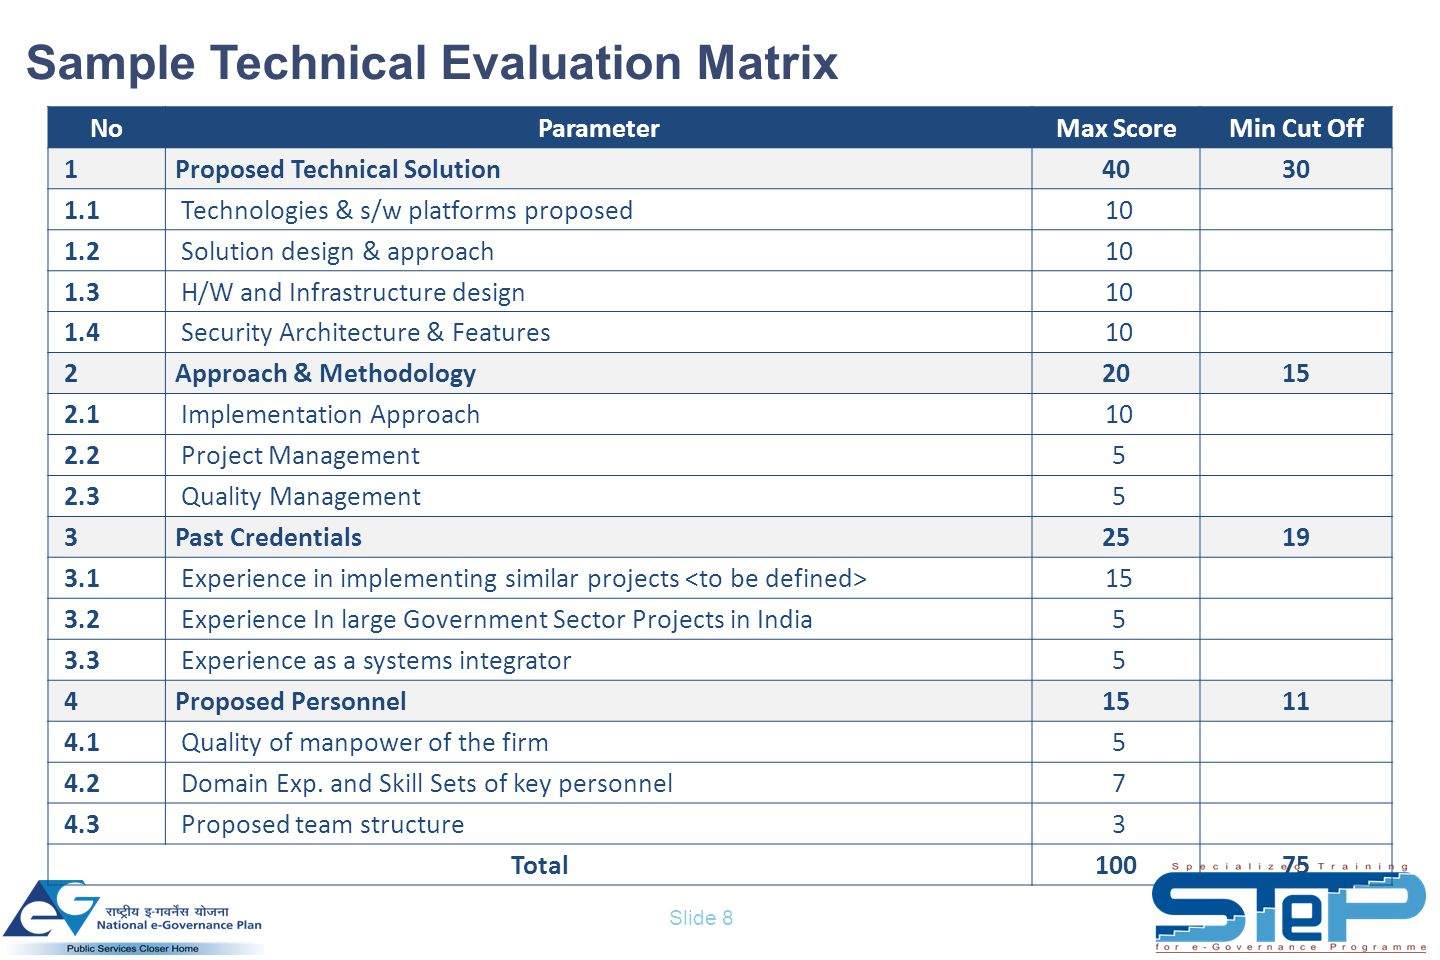 Slide 8 Sample Technical Evaluation Matrix NoParameterMax ScoreMin Cut Off 1Proposed Technical Solution4030 1.1Technologies & s/w platforms proposed10 1.2Solution design & approach10 1.3H/W and Infrastructure design10 1.4Security Architecture & Features10 2Approach & Methodology2015 2.1Implementation Approach10 2.2Project Management5 2.3Quality Management5 3Past Credentials2519 3.1Experience in implementing similar projects 15 3.2Experience In large Government Sector Projects in India5 3.3Experience as a systems integrator5 4Proposed Personnel1511 4.1Quality of manpower of the firm5 4.2Domain Exp.